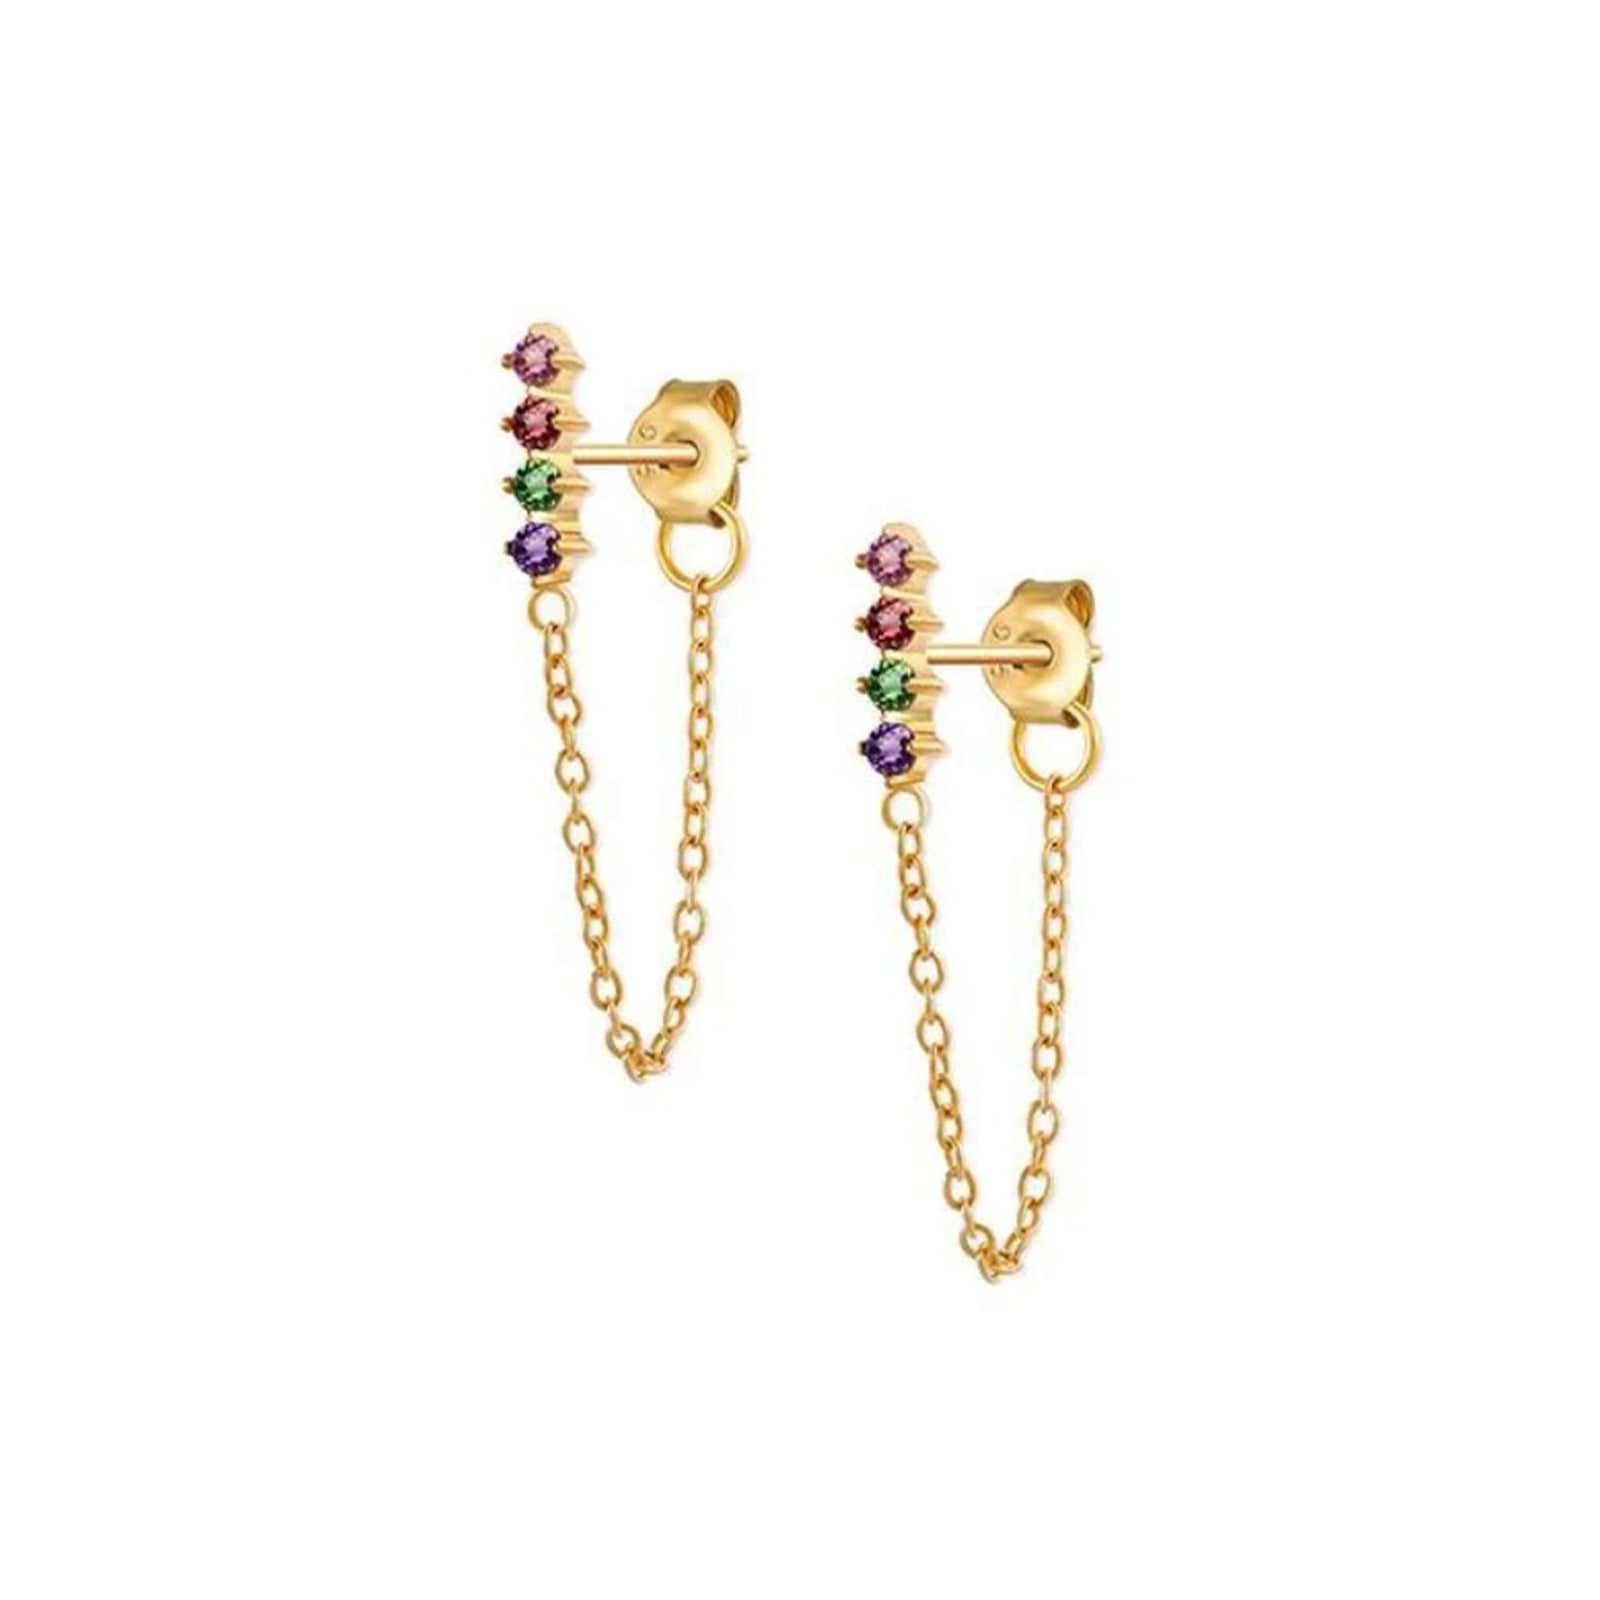 jewel-earringearrings-jewelry